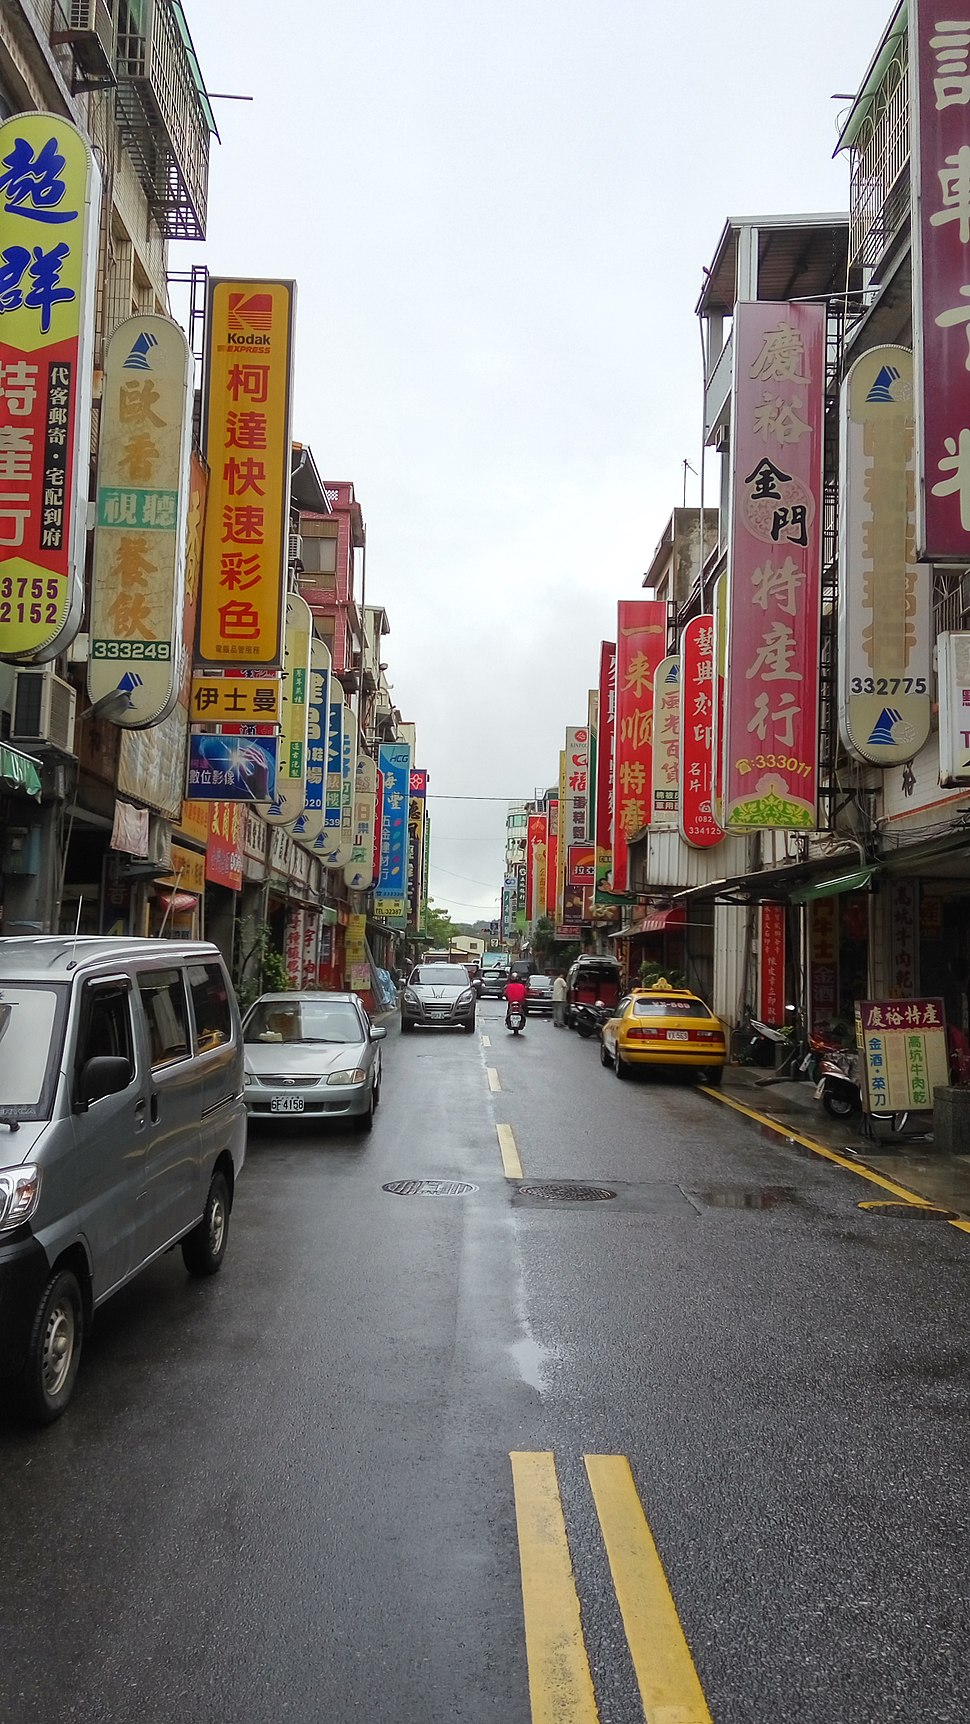 Commercial district of Kinmen